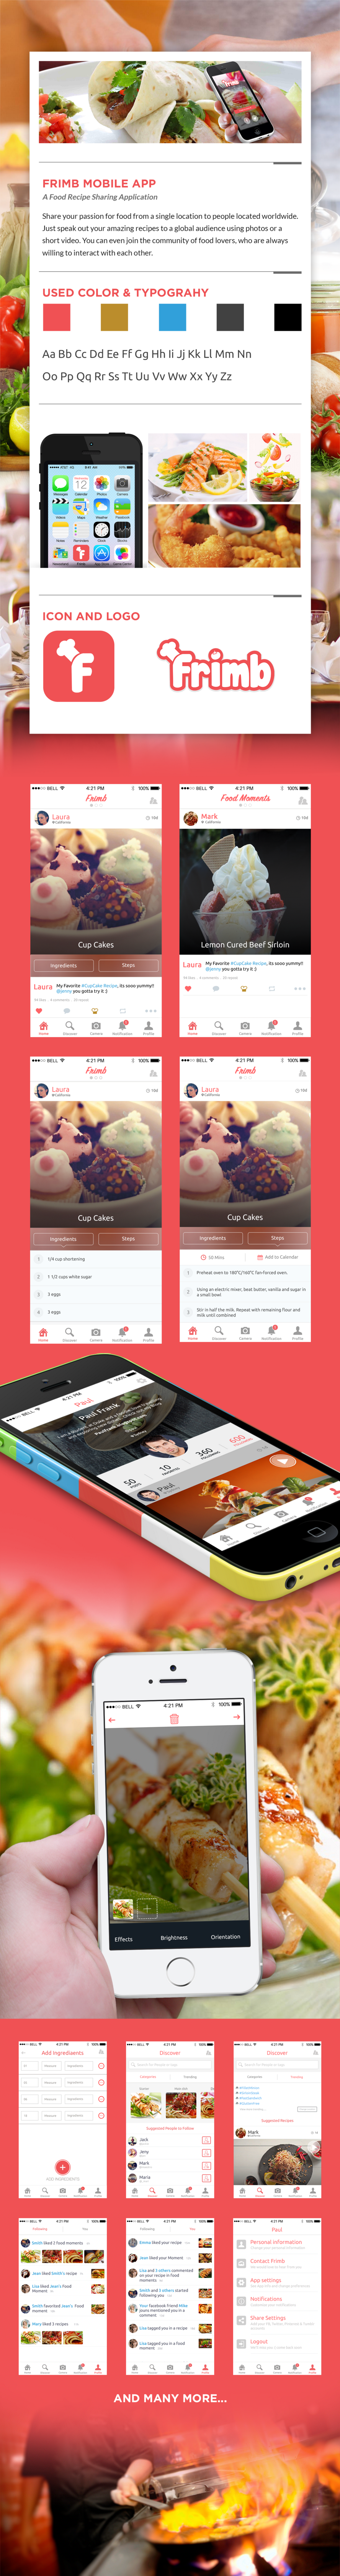 Food recipe sharing app with awesome social features that entertain food recipe sharing app with awesome social features that entertain and engage foodies design and forumfinder Image collections